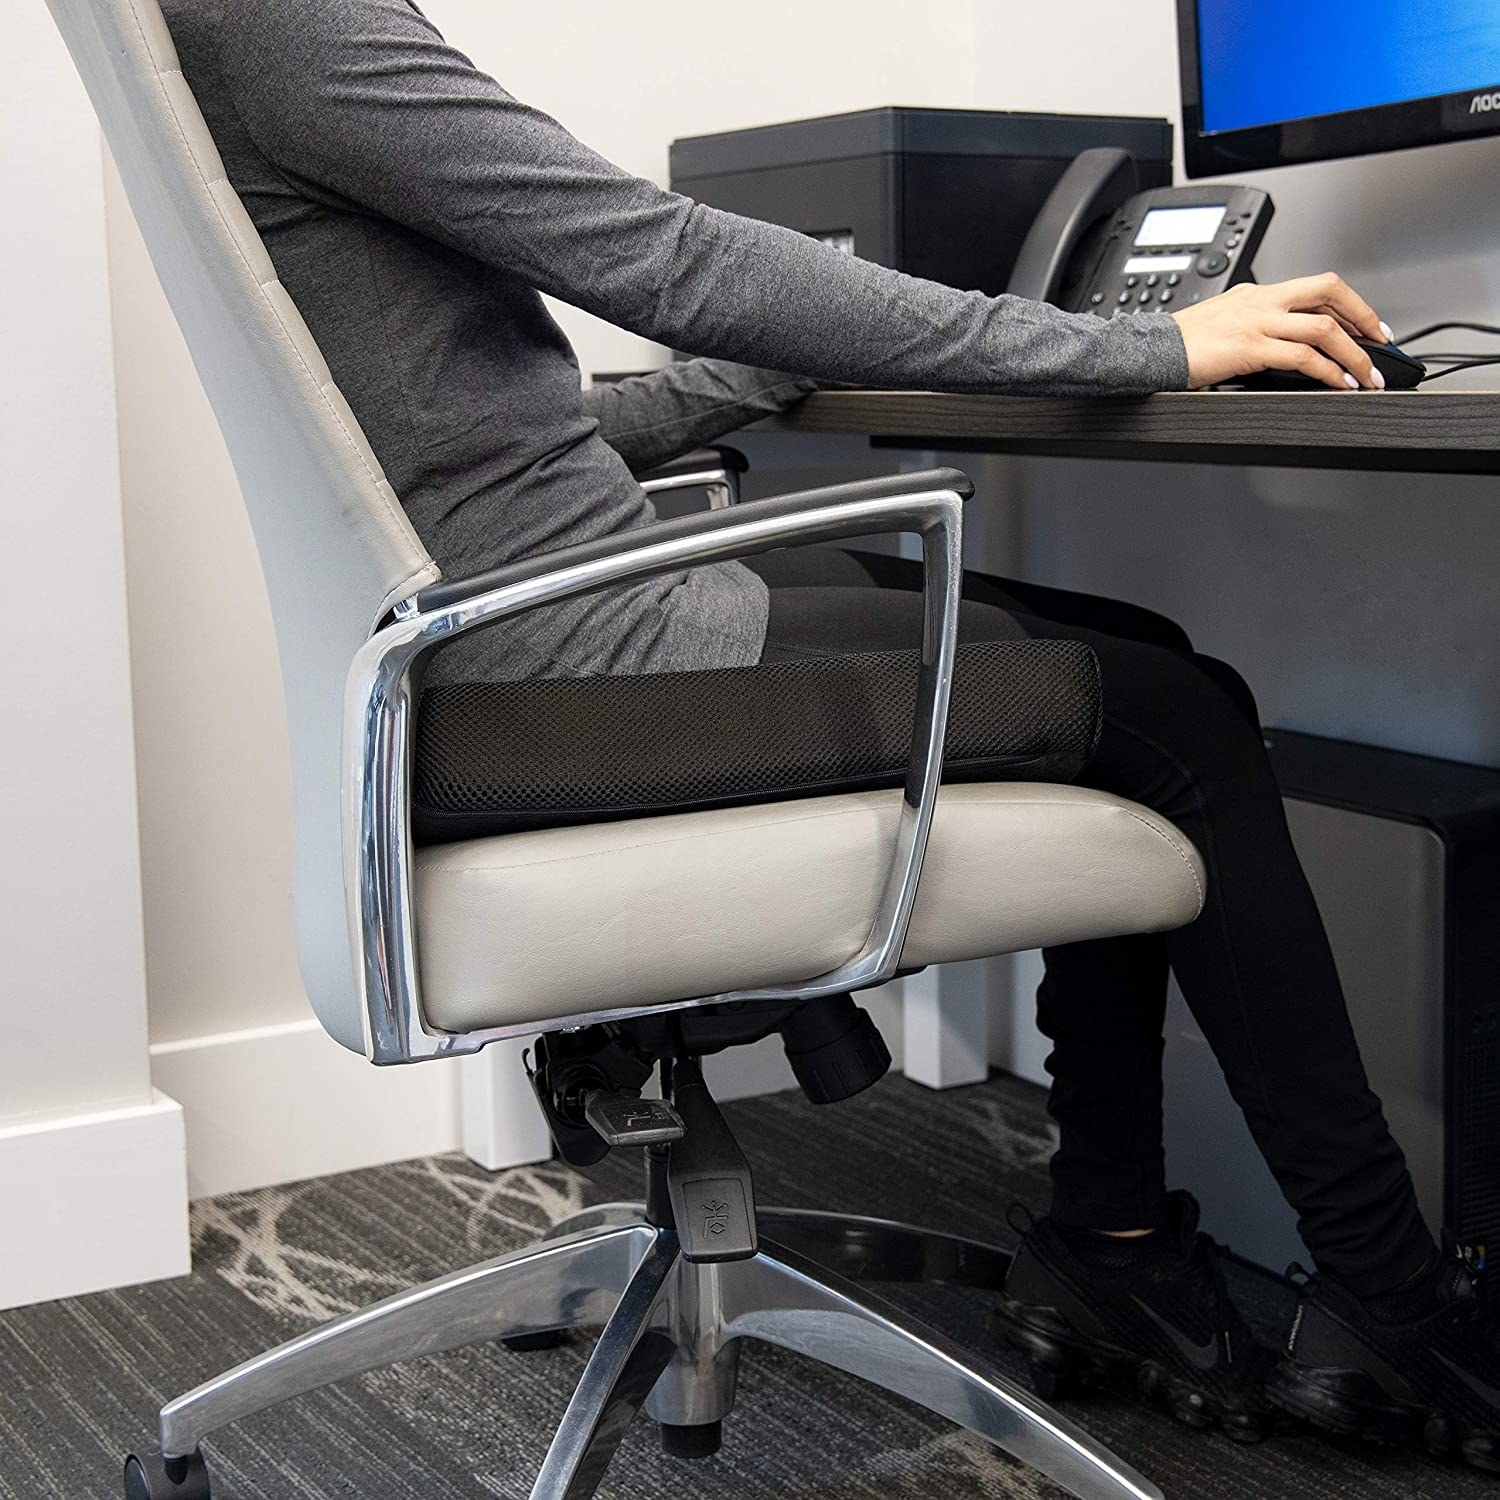 A person sitting on a chair with the cushion under their butt